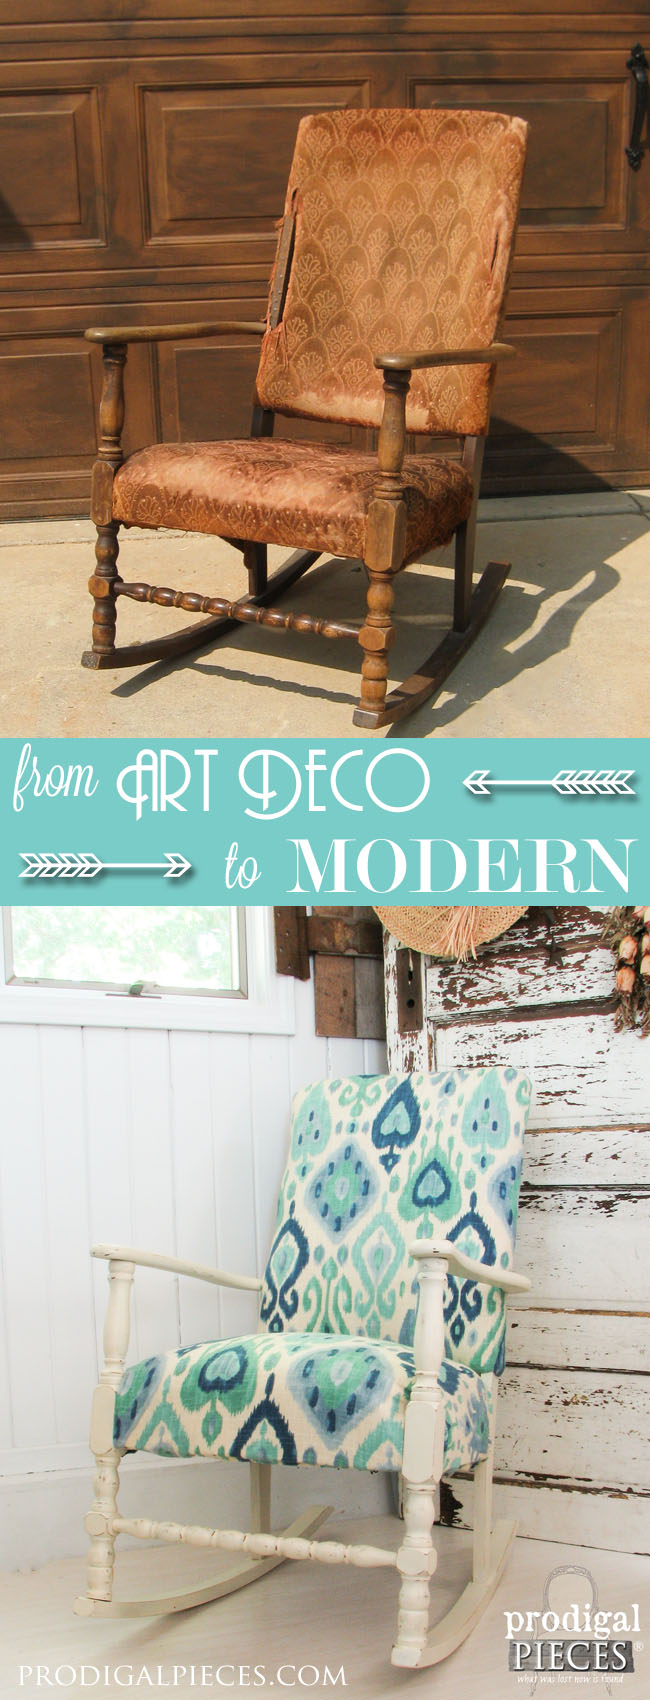 Worn out Art Deco rocking chair gets a modern Ikat facelift by Prodigal Pieces www.prodigalpieces.com #prodigalpieces